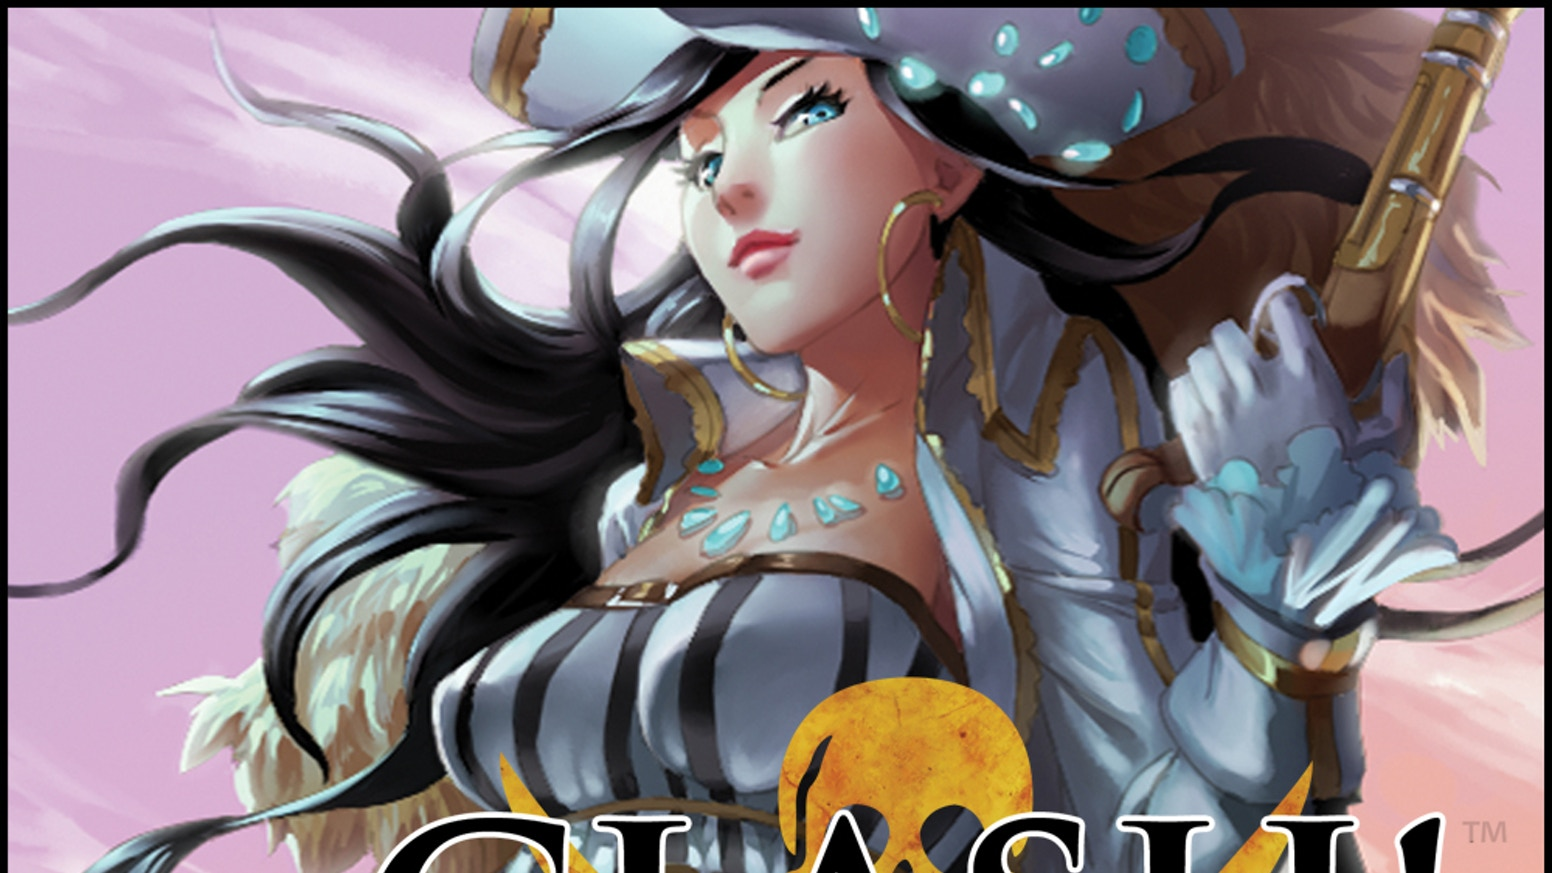 To get a copy of CLASH! Dawn of Steam go to our webstore at www.madapegames.com